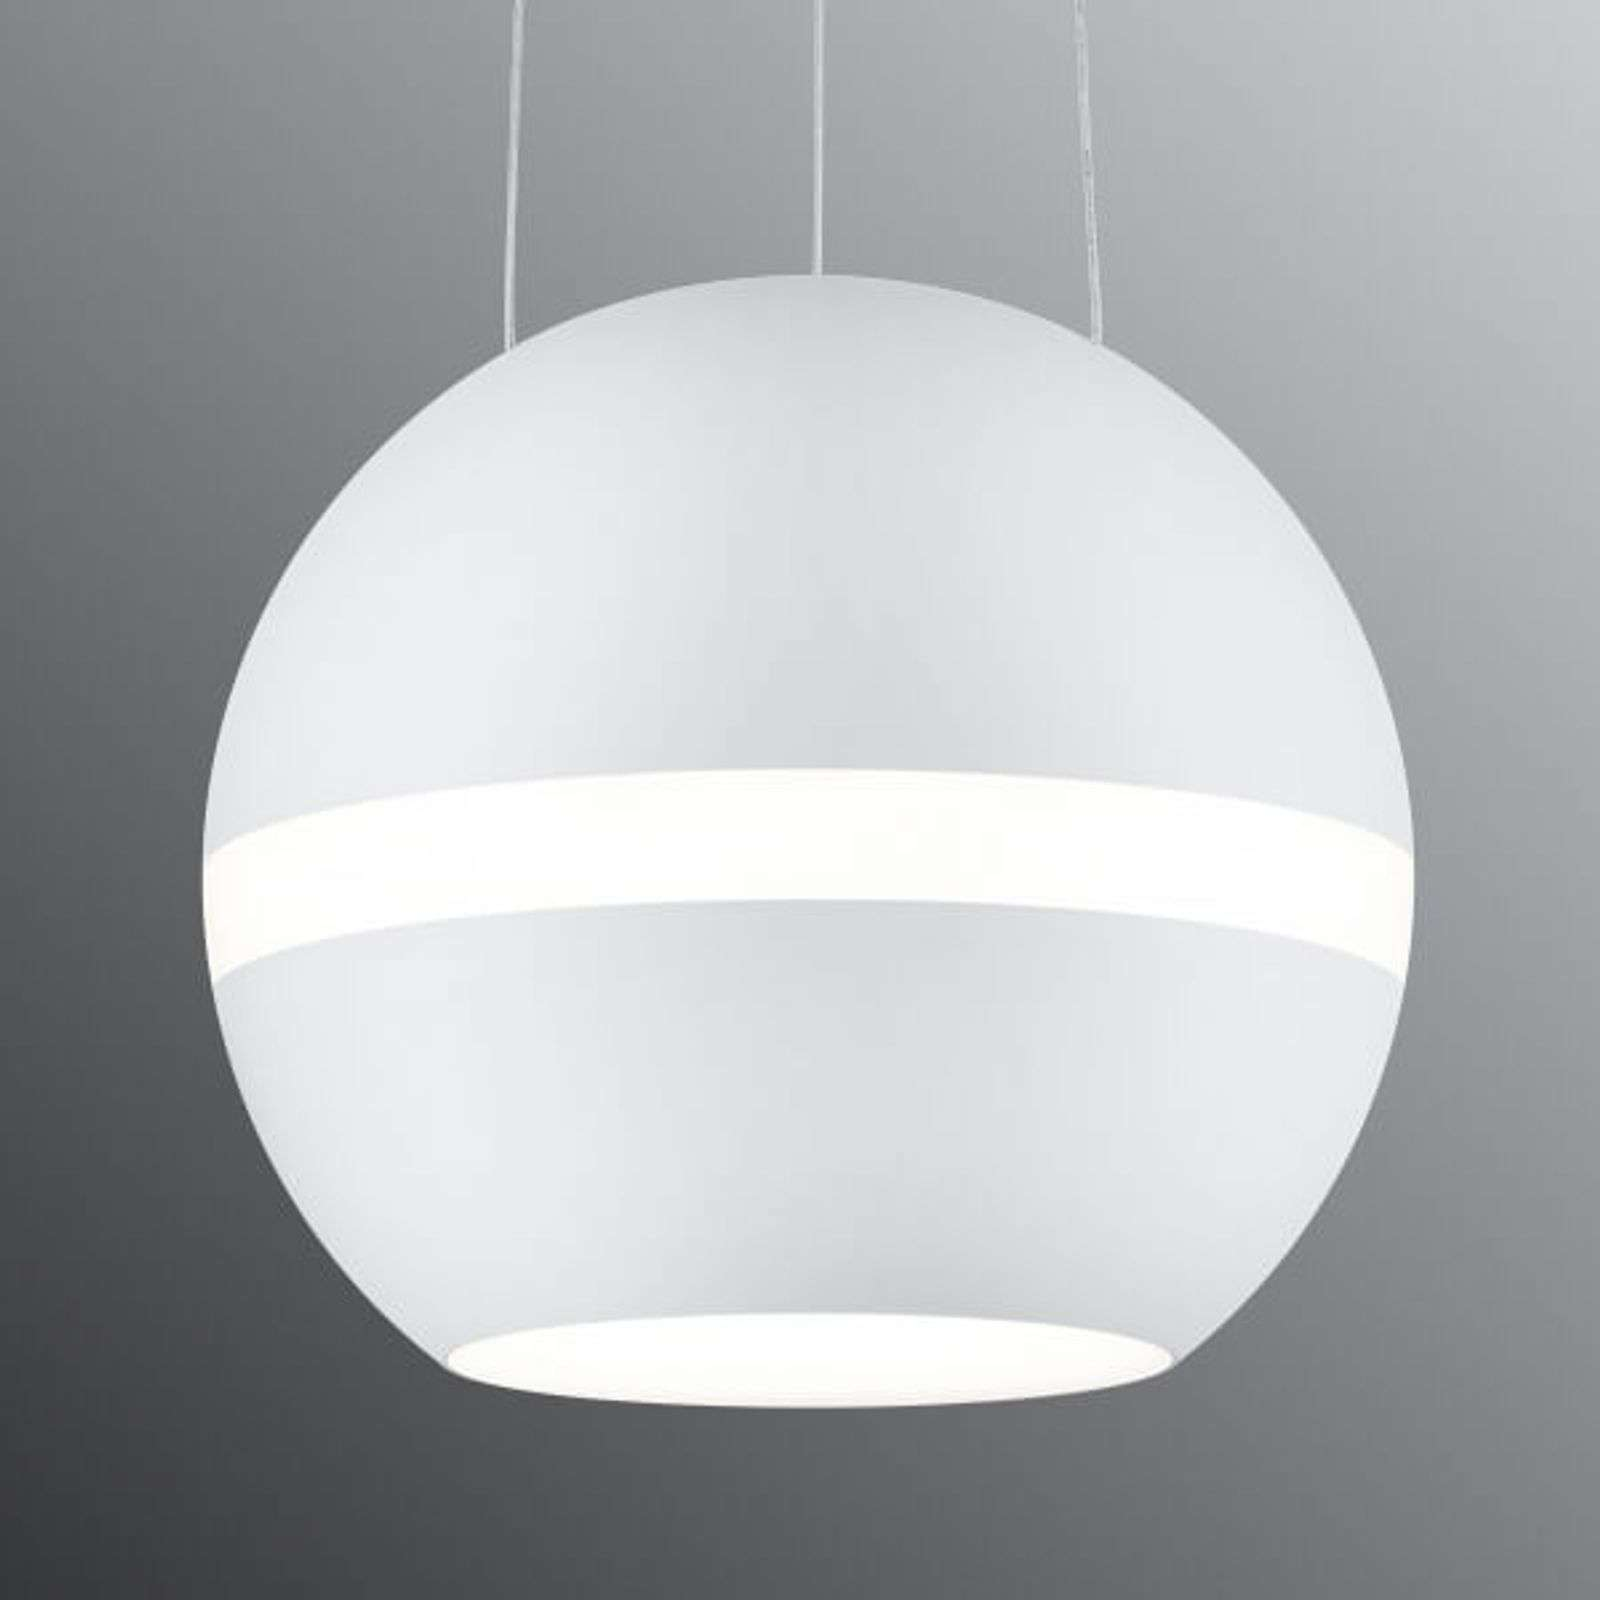 LED hanglamp Balloon met switch dimfunctie